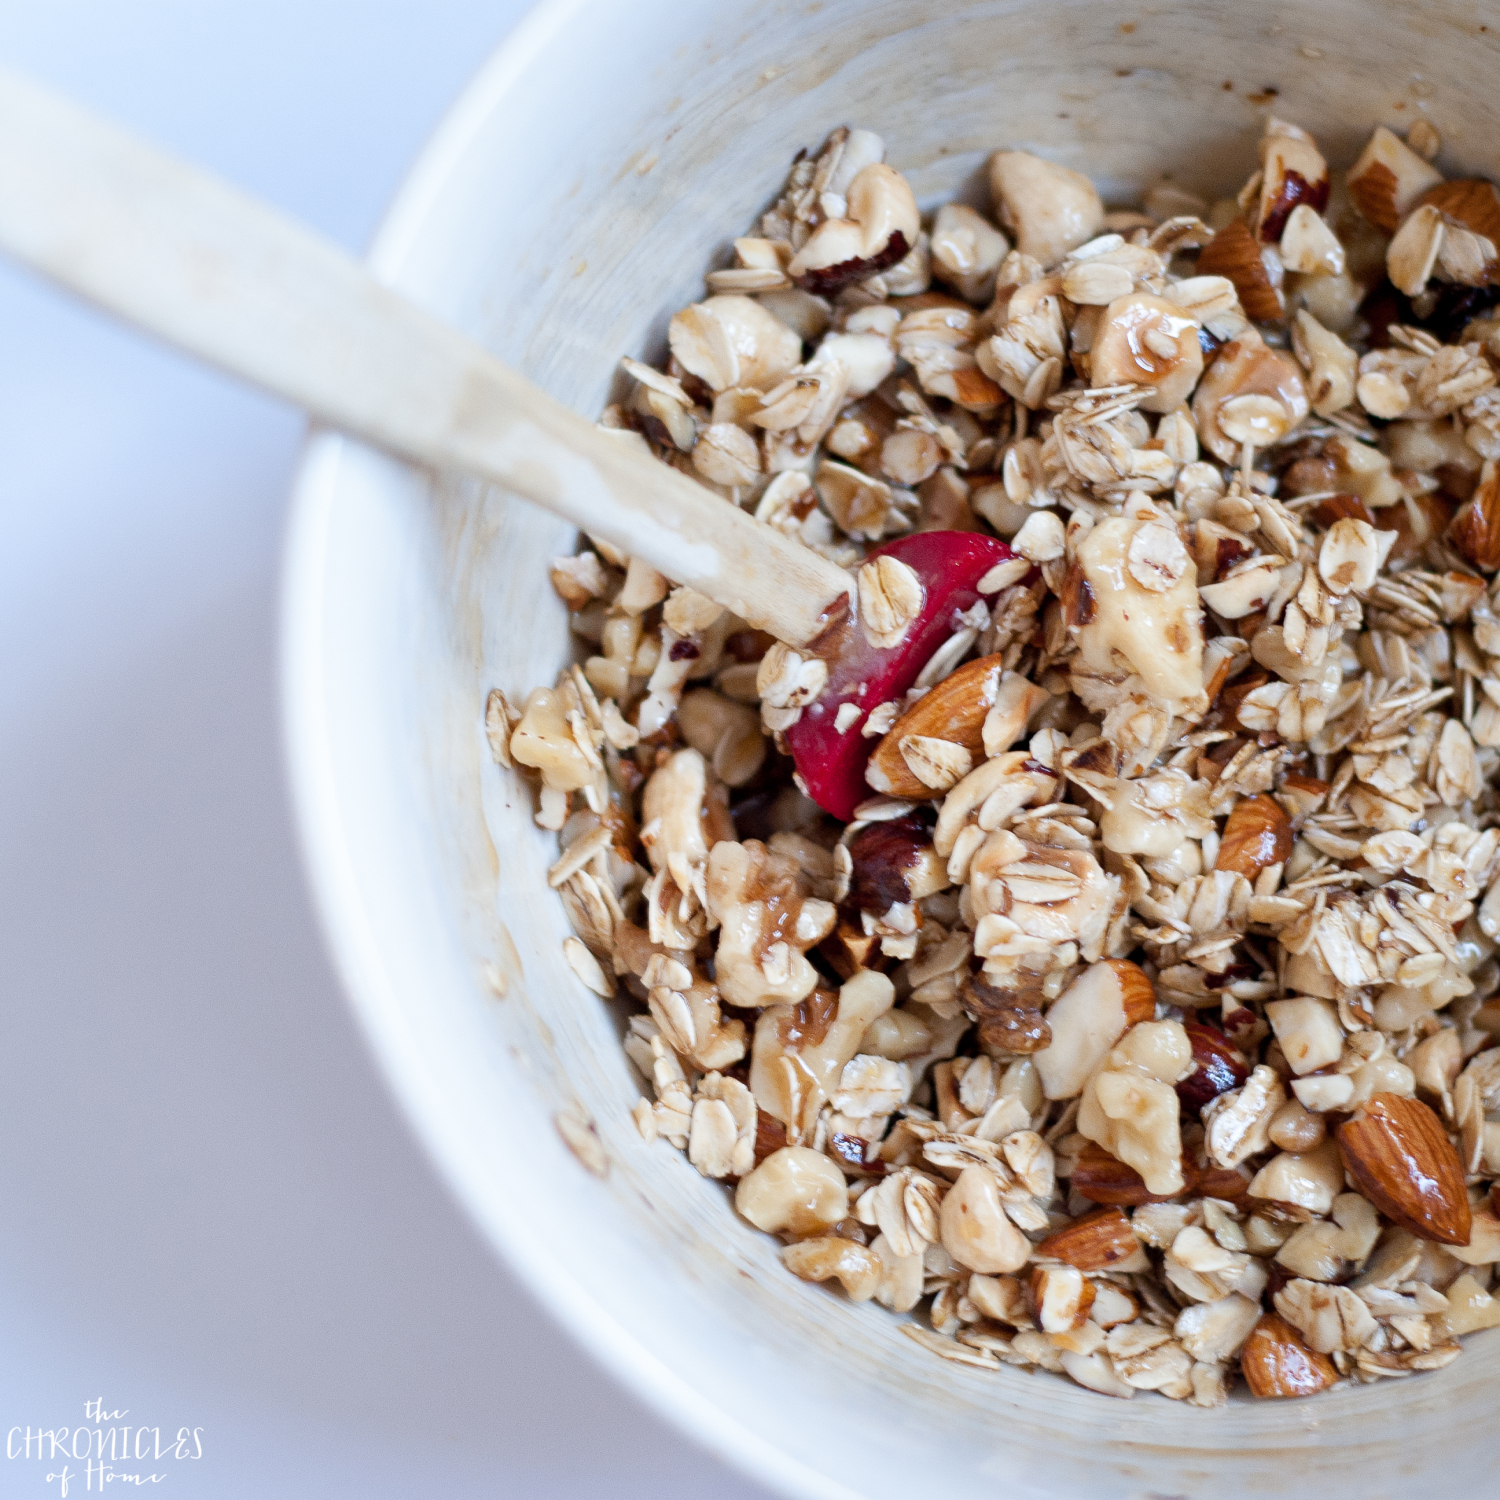 Oat and nut breakfast crumble - healthy, hearty, and delicious with nuts, seeds, fresh fruit, and an easy homemade cinnamon yogurt drizzle